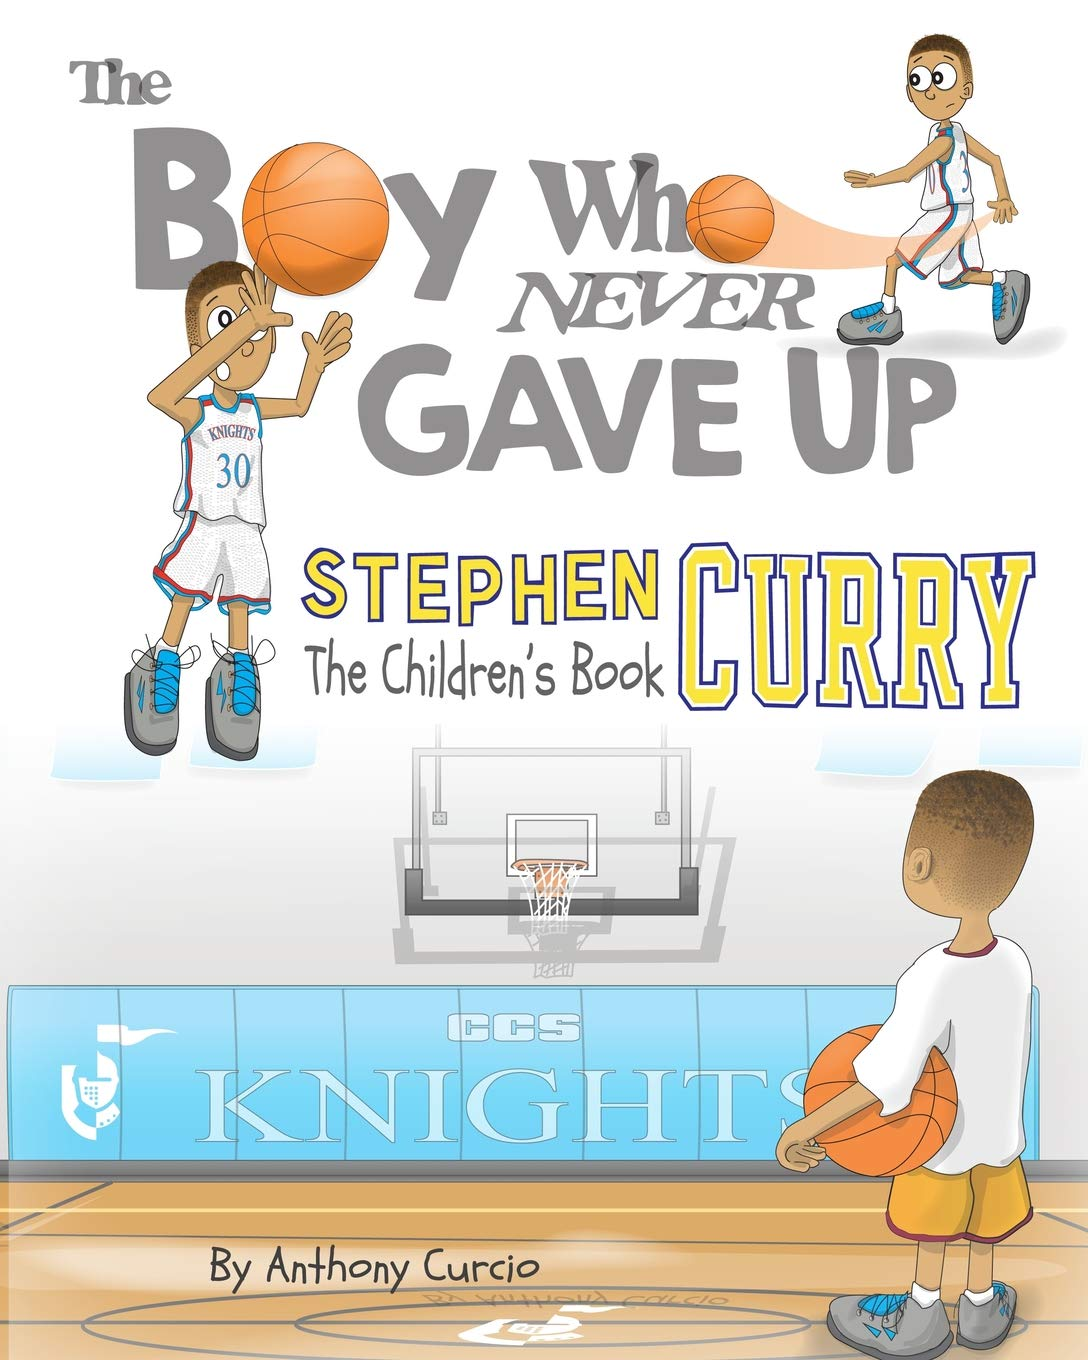 Stephen Curry  The Children's Book  The Boy Who Never Gave Up